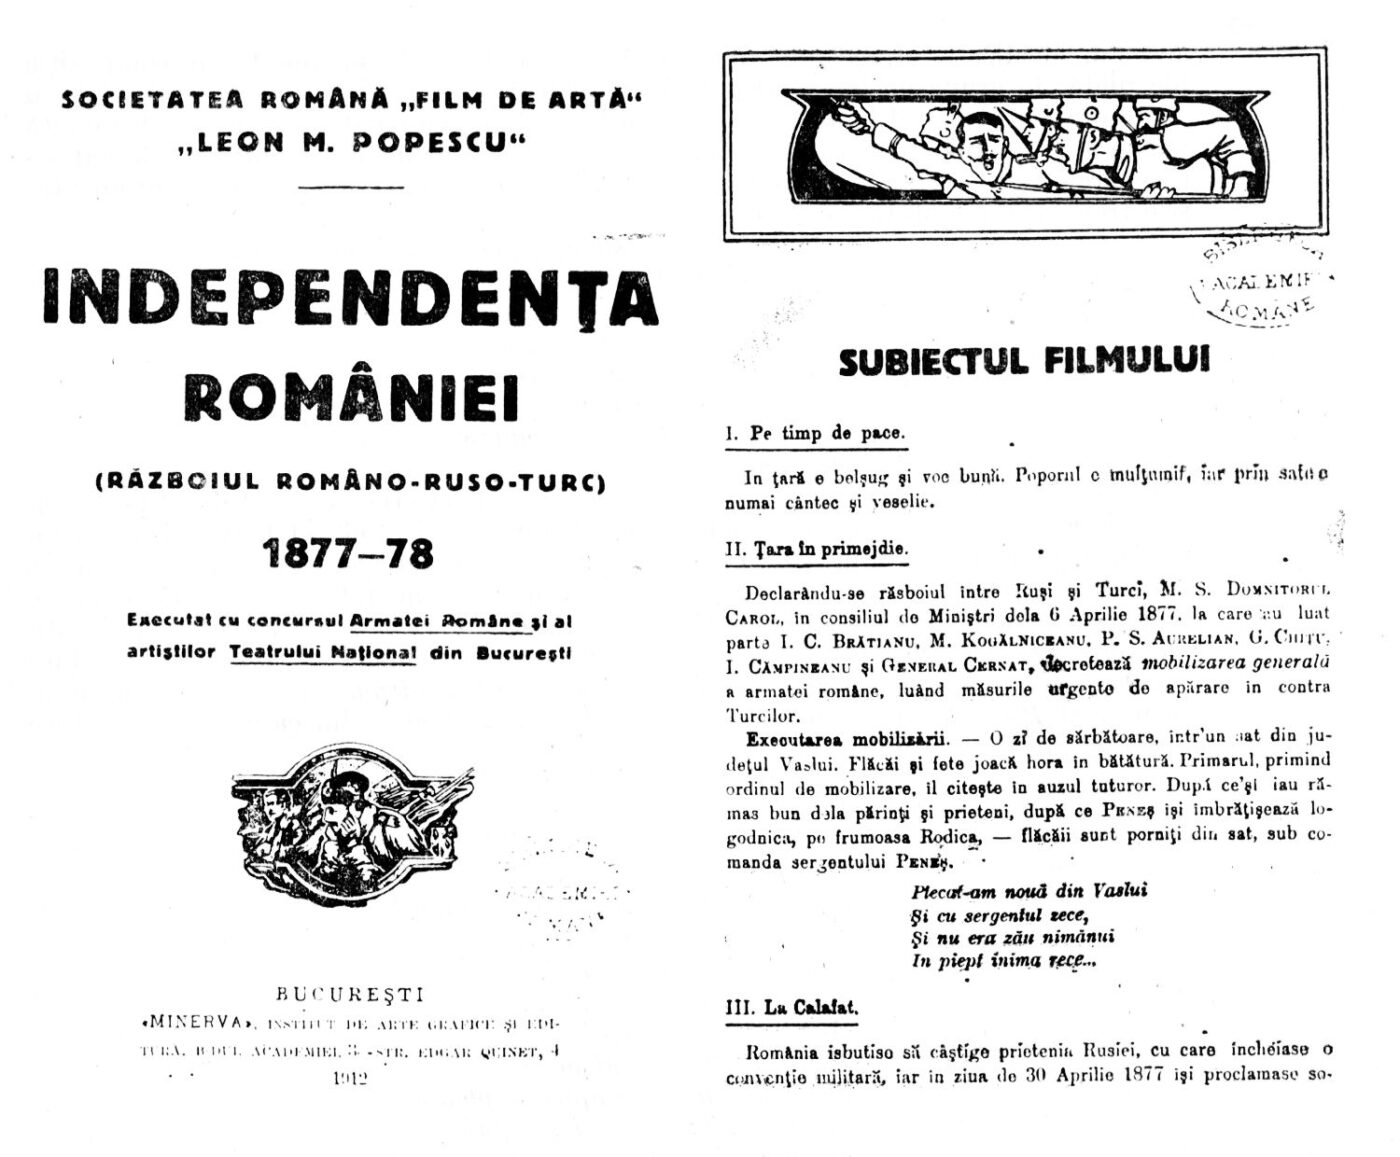 The Independence of Romania ( 1912) - Independenţa României, silent film